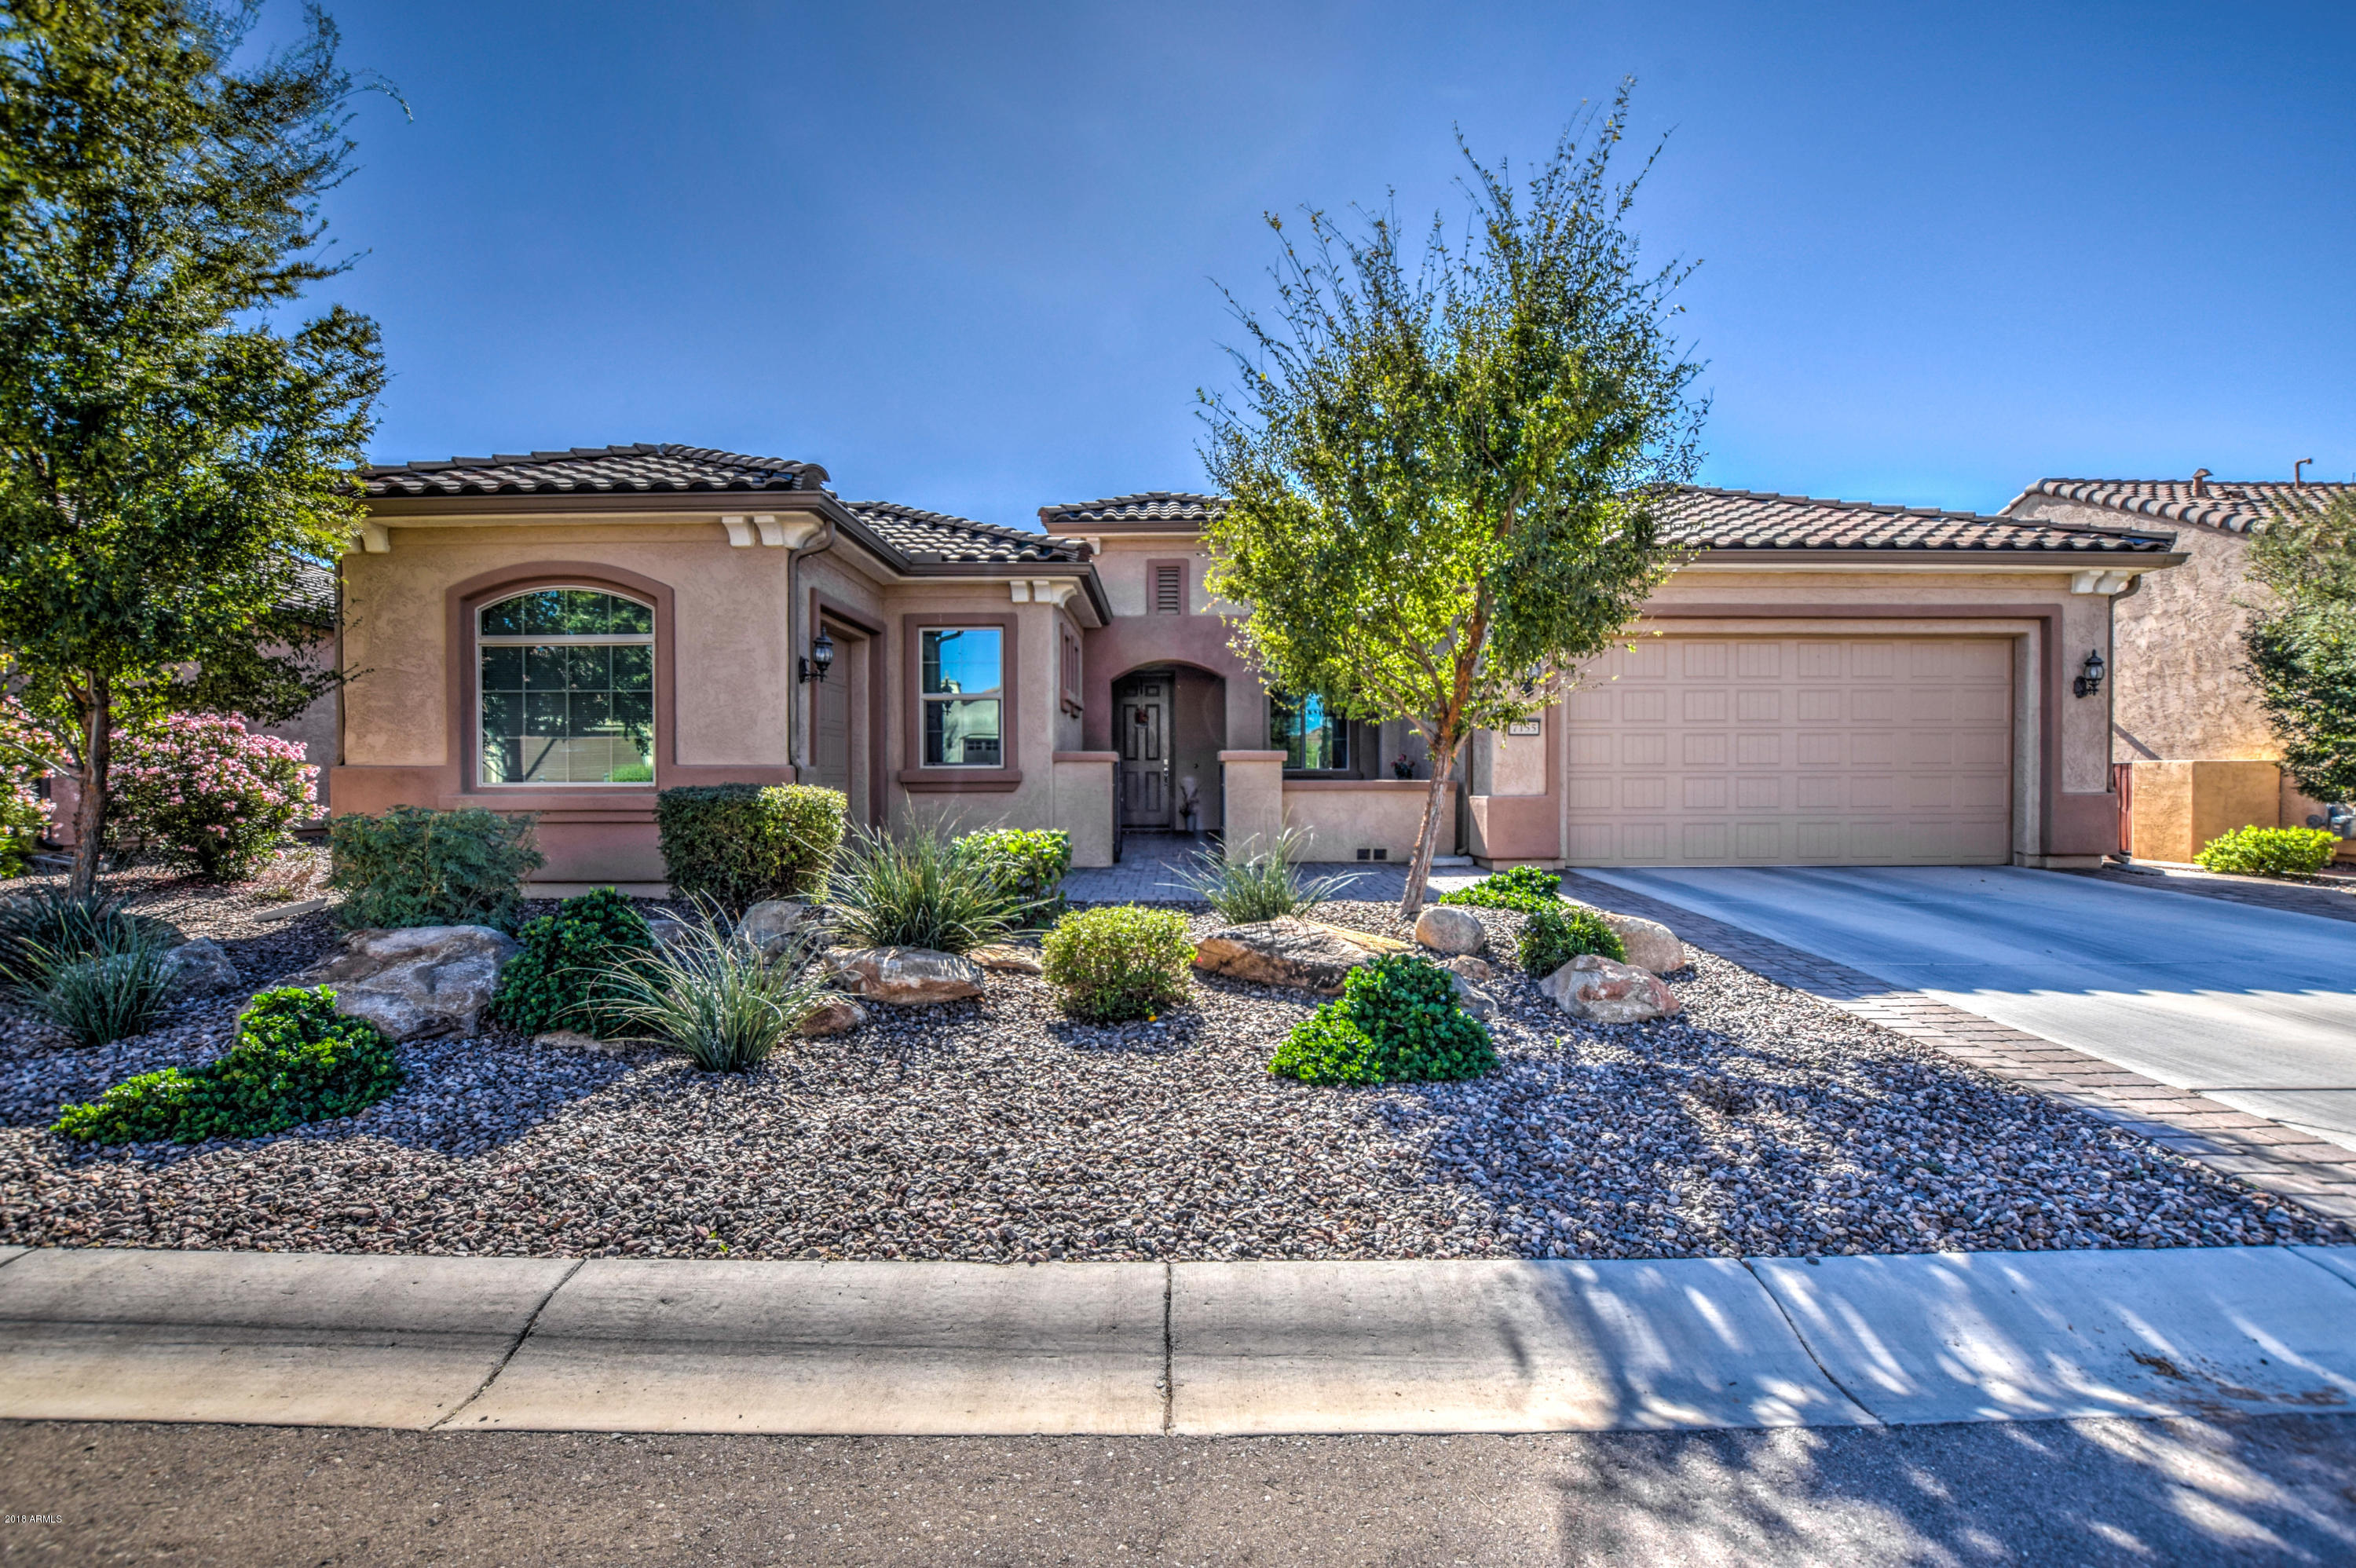 Photo of 7155 W MERRIWEATHER Way, Florence, AZ 85132